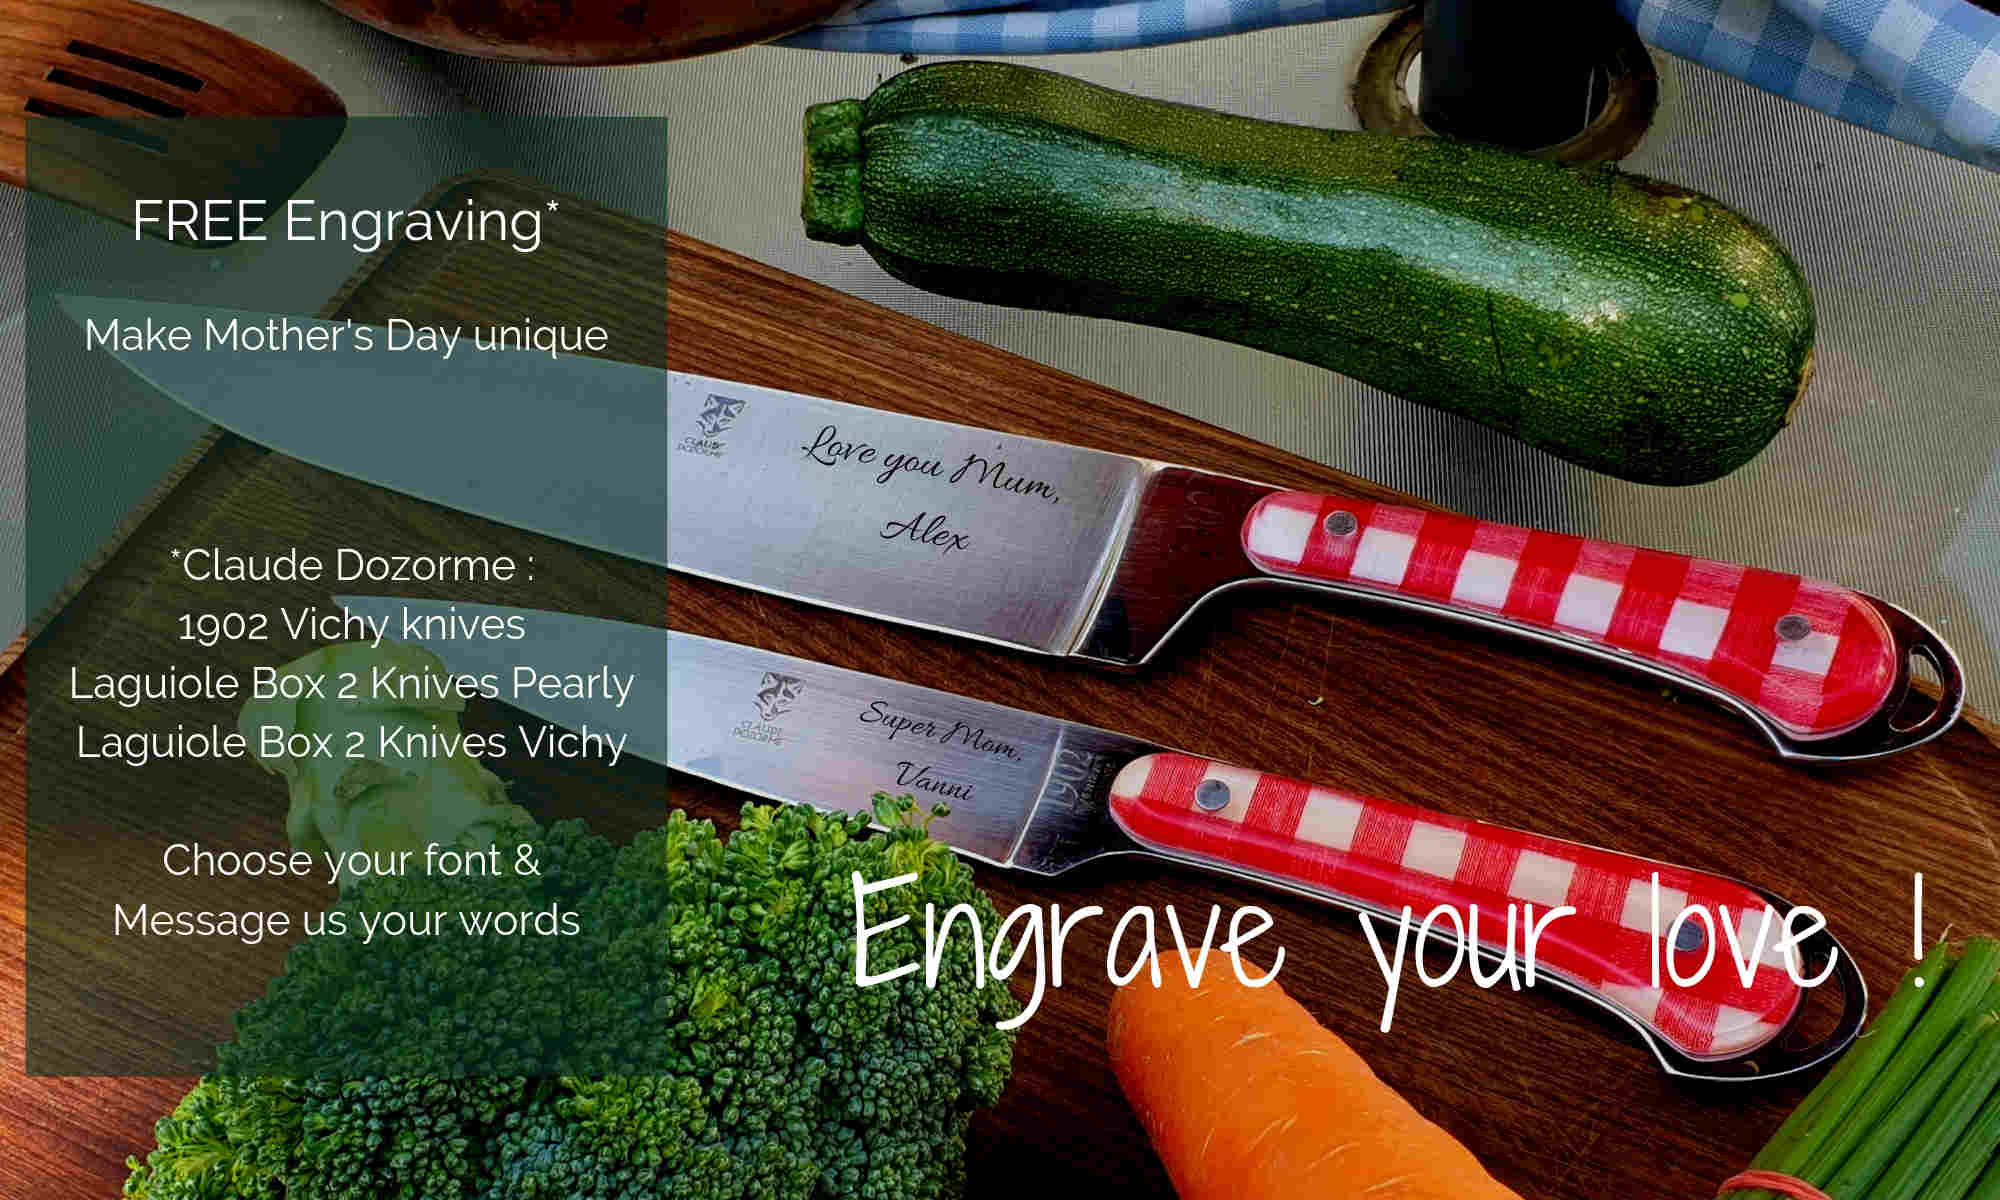 Engrave your Love on for Mother's day on Claude Dozorme Vichy knives